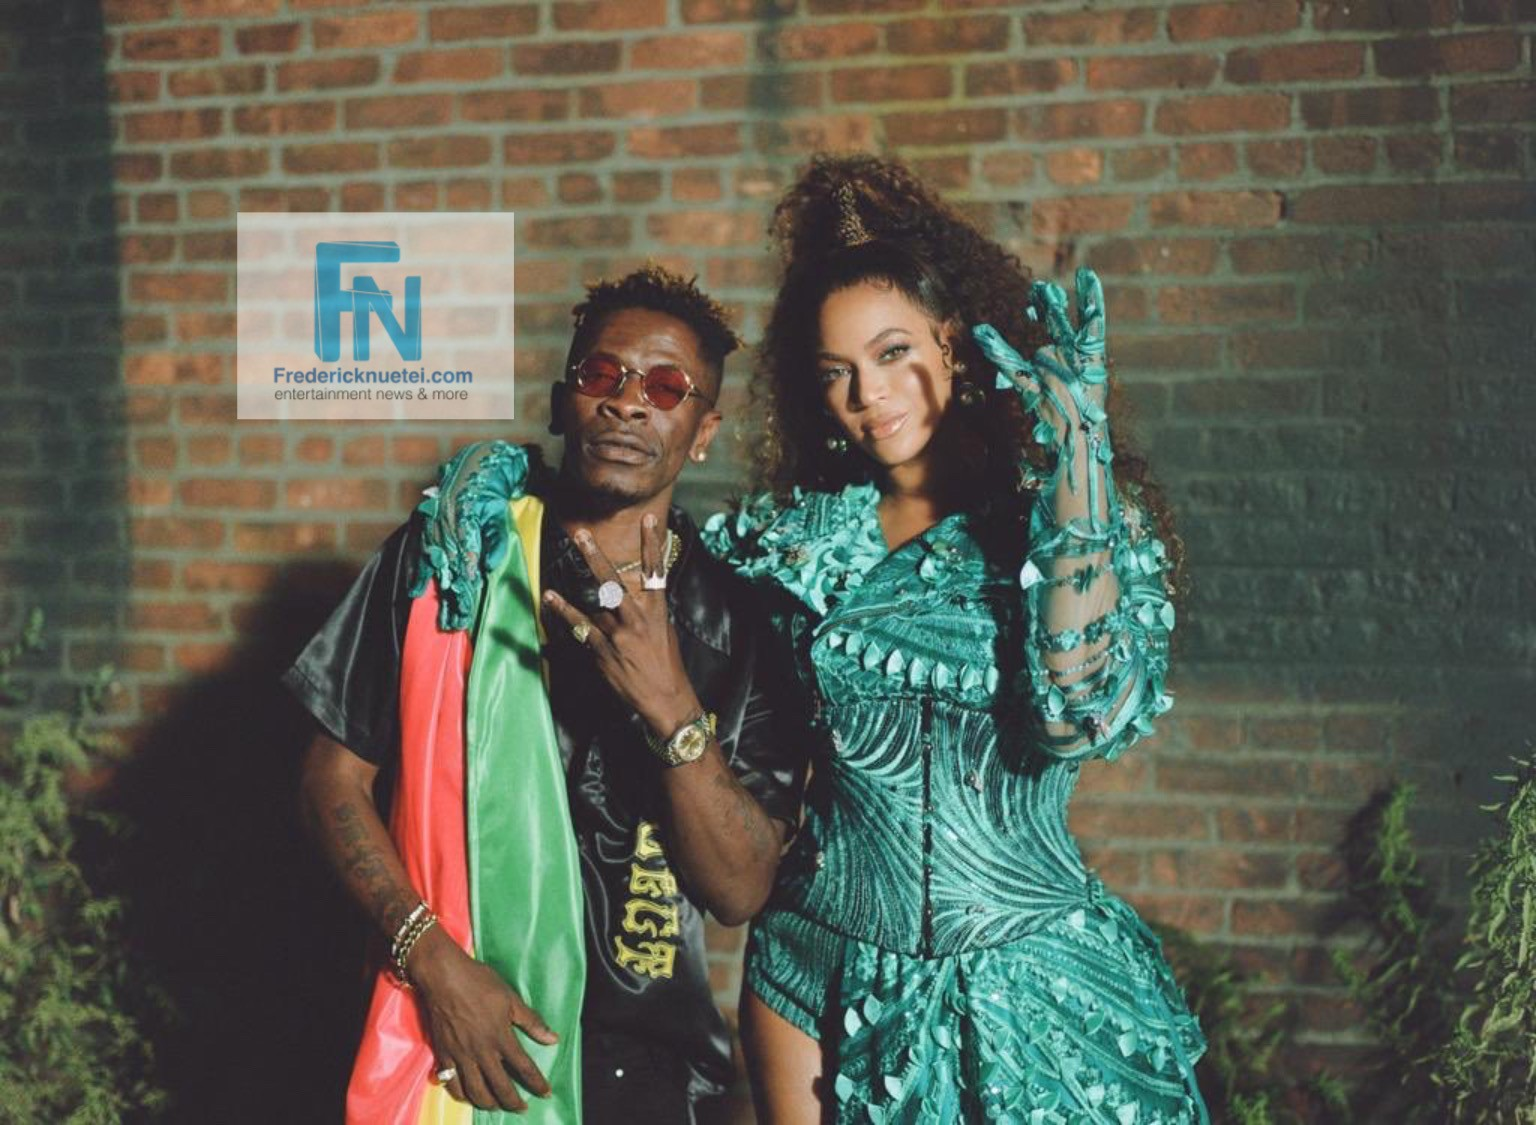 Details On How Shatta Wale Sneaked Out Of Ghana To Shoot His Part Of 'Already' Music Video With Beyoncé In The States